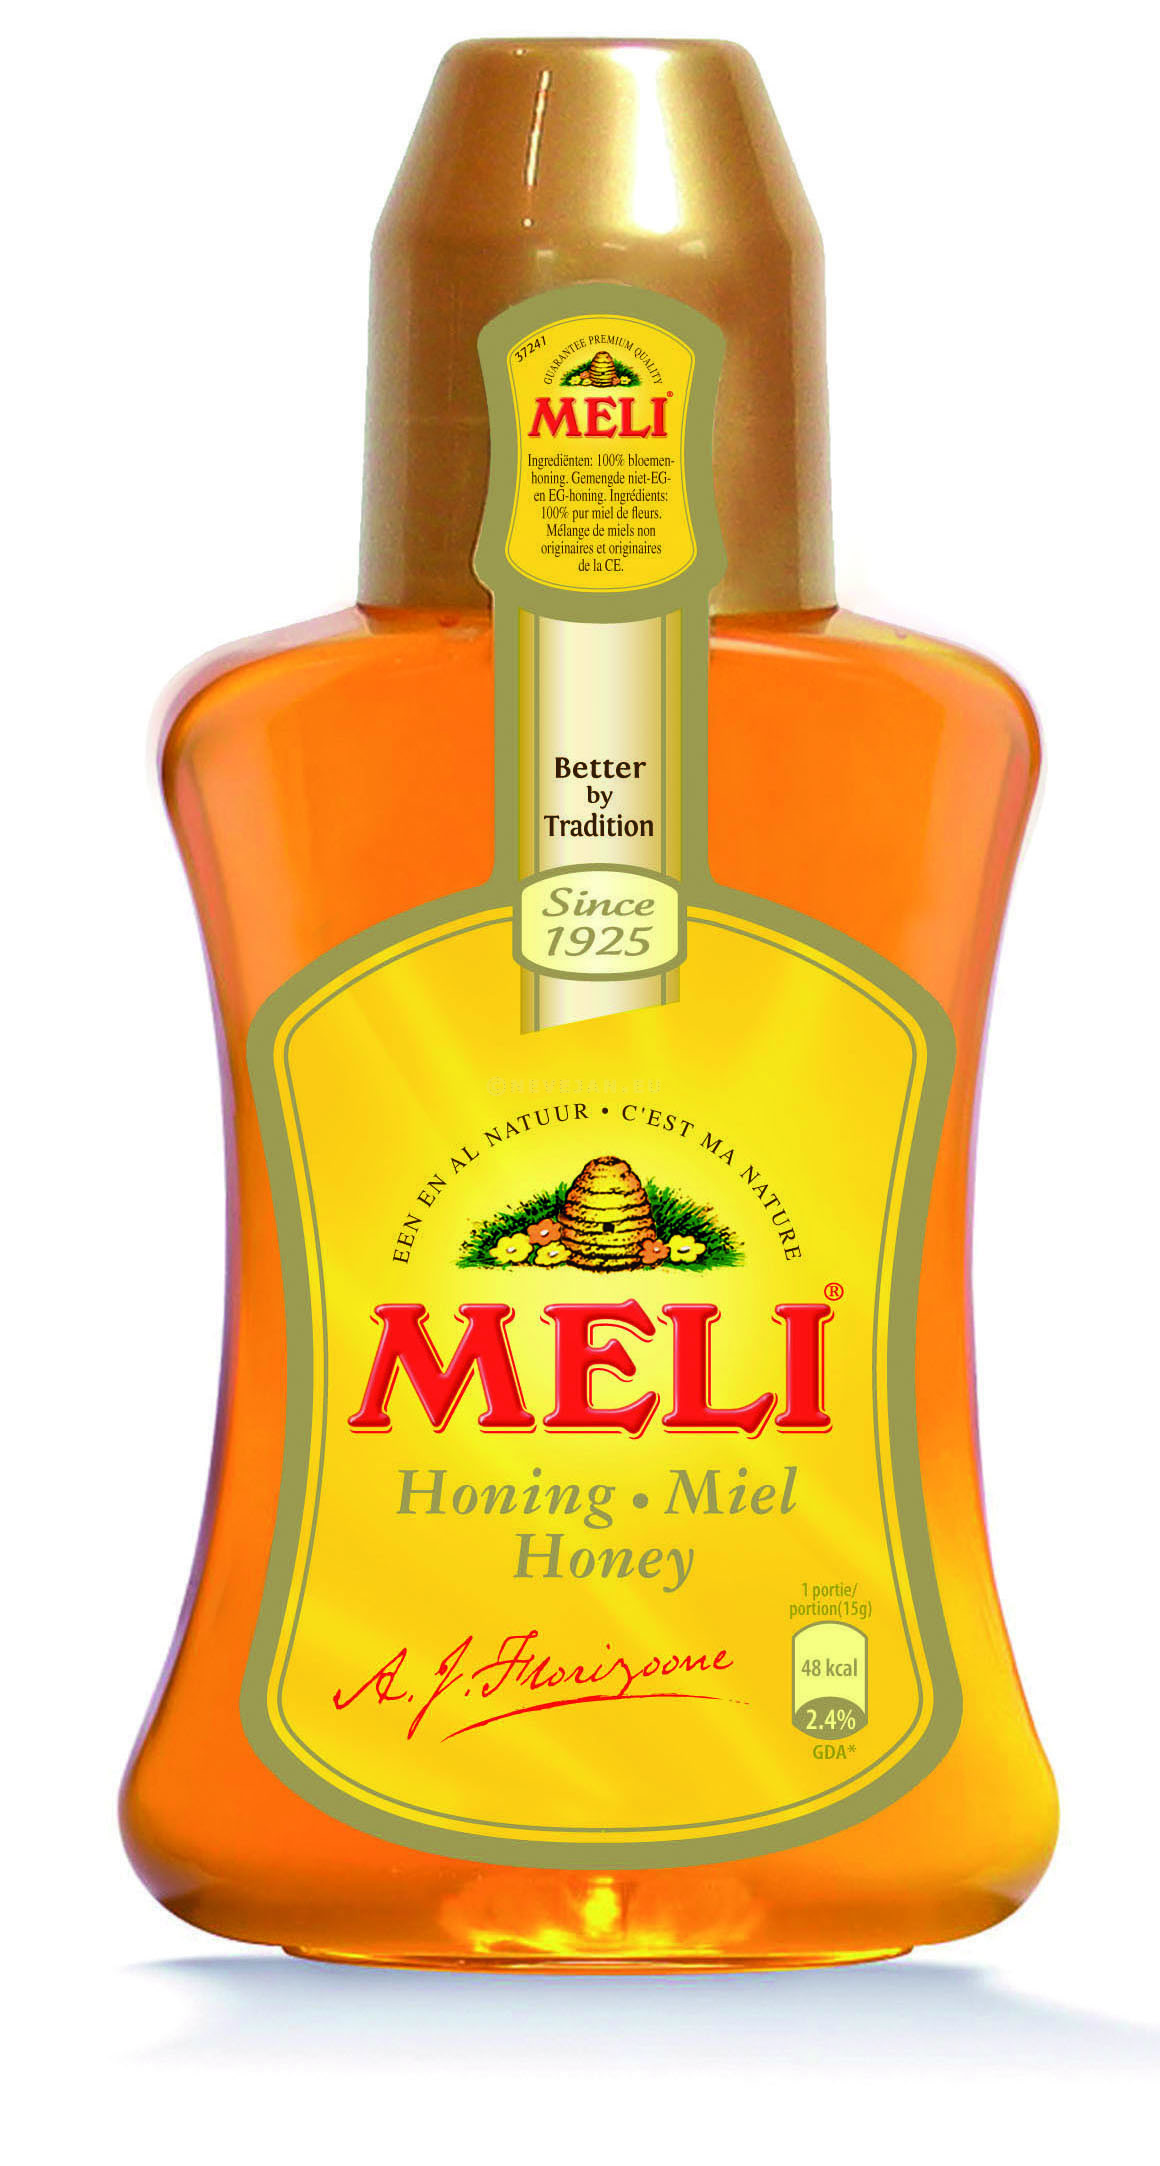 Meli Acacia Honey liquid (100%) 500g squeezable bottle